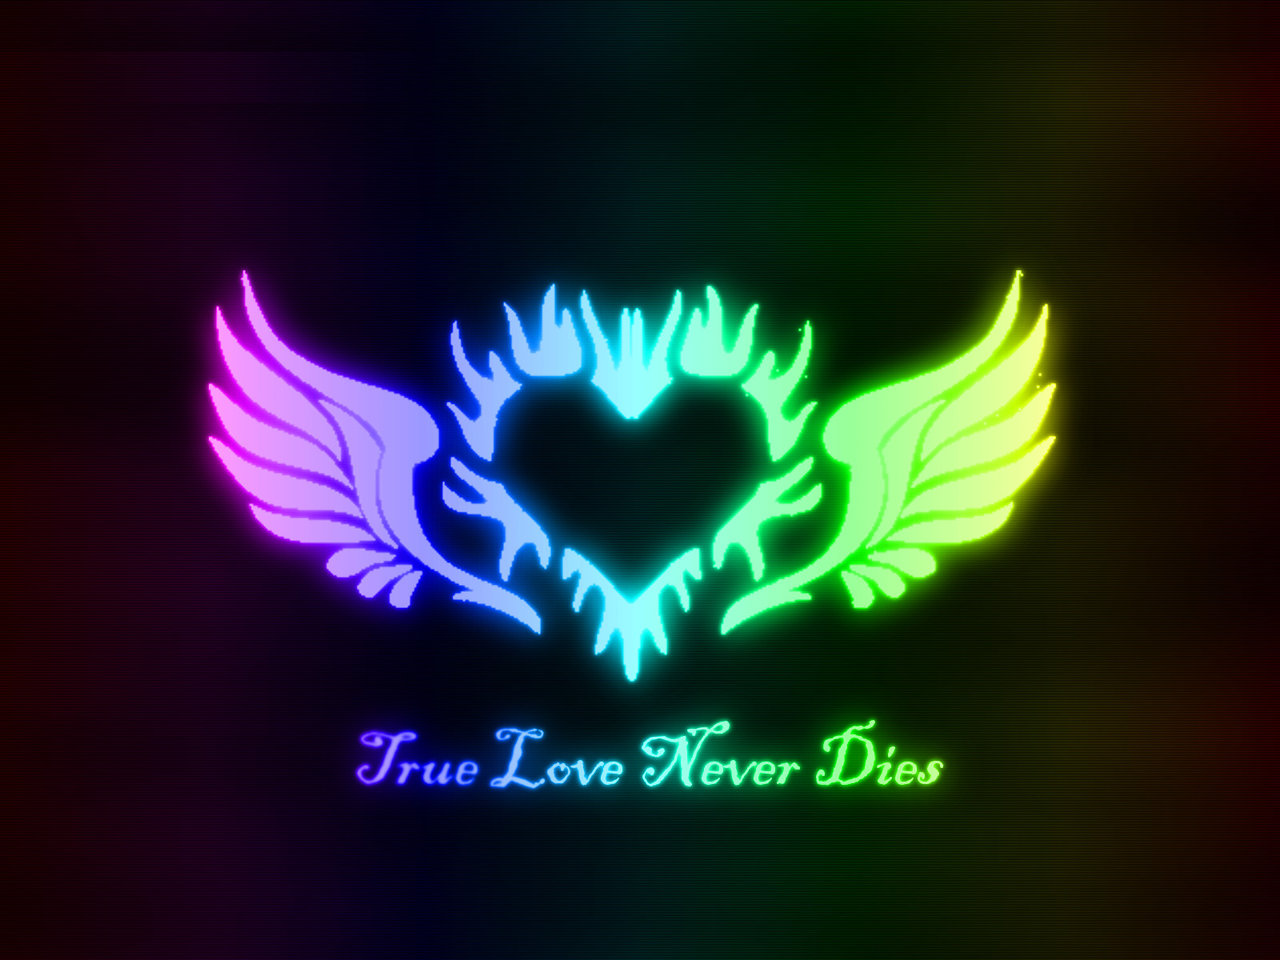 Love Never Dies Iphone Wallpaper : True Love Never Dies Wallpaper - WallpaperSafari